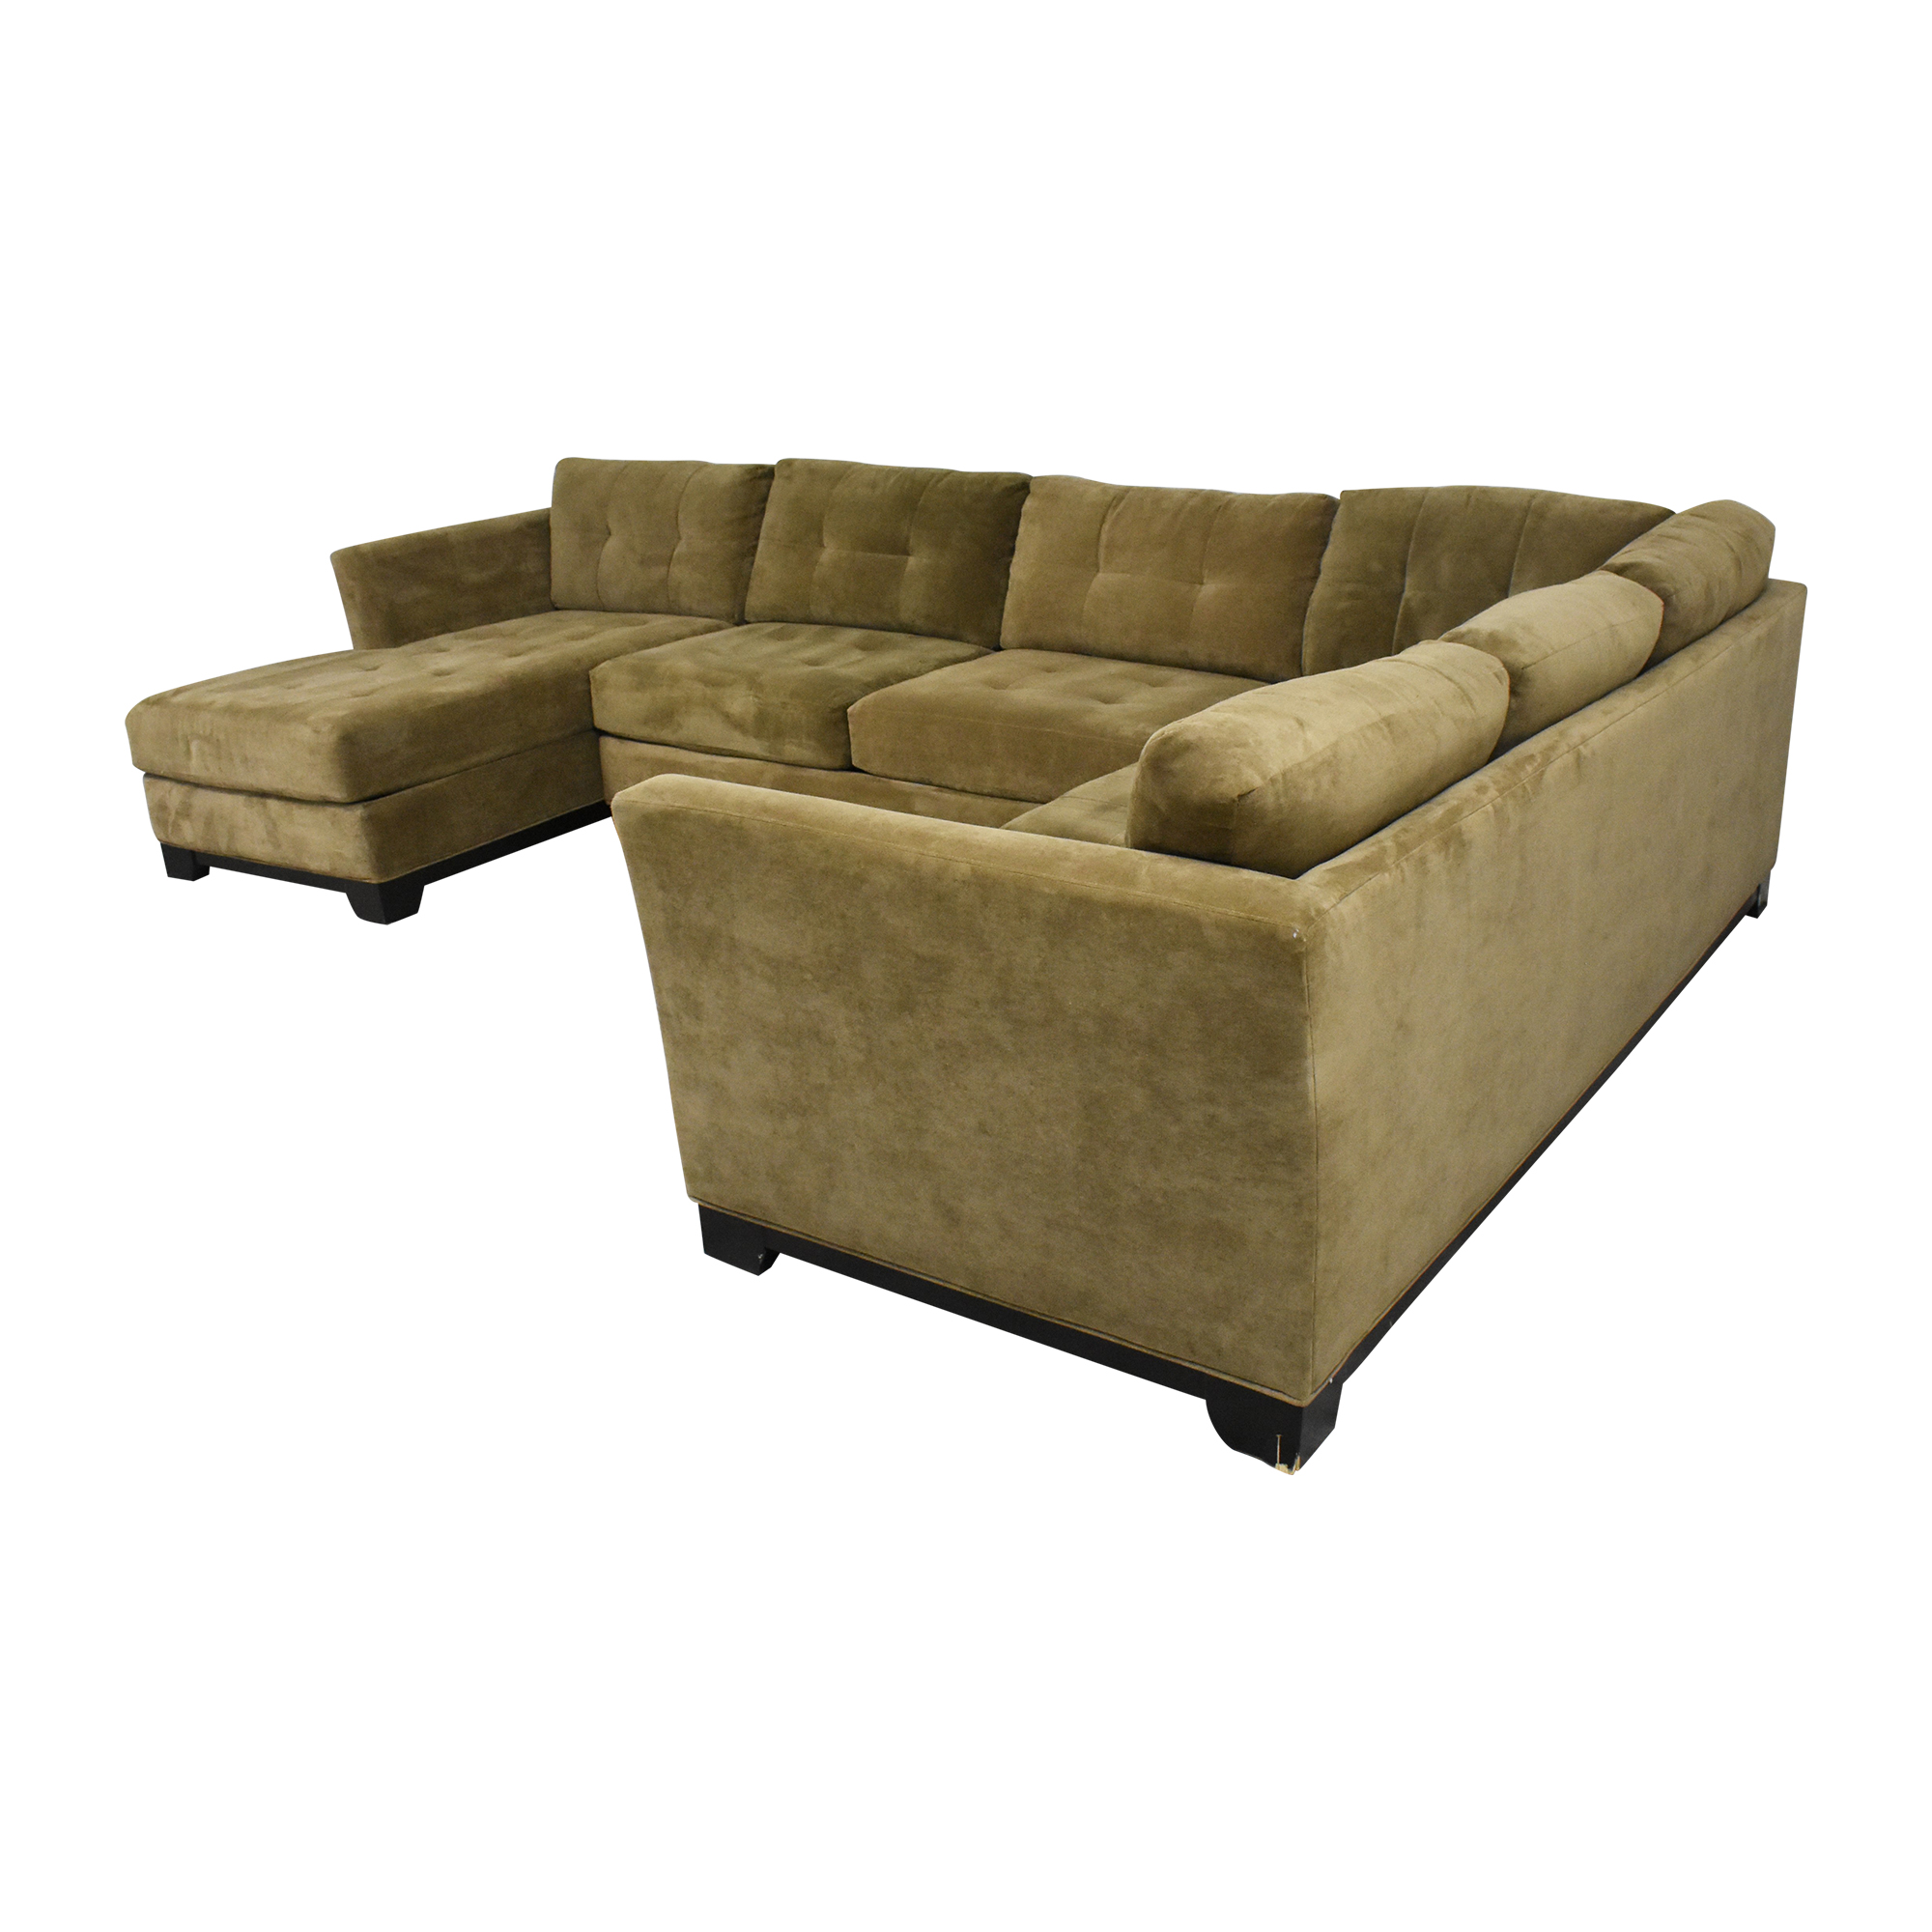 Macy's Macy's Elliot Three Piece Sectional Sofa Sectionals